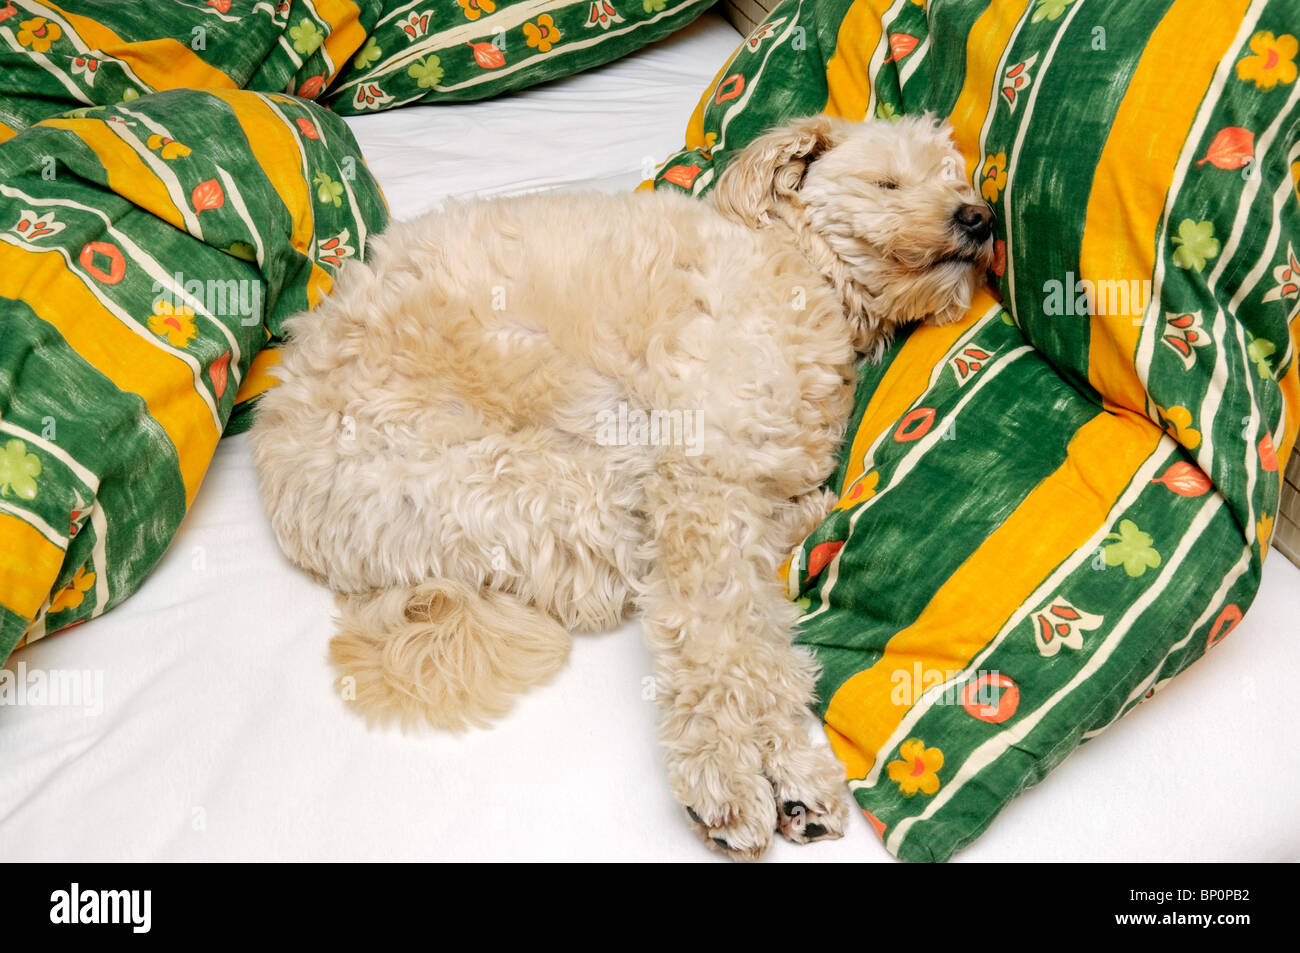 Small off-white pet terrier dog on owner's bed. - Stock Image